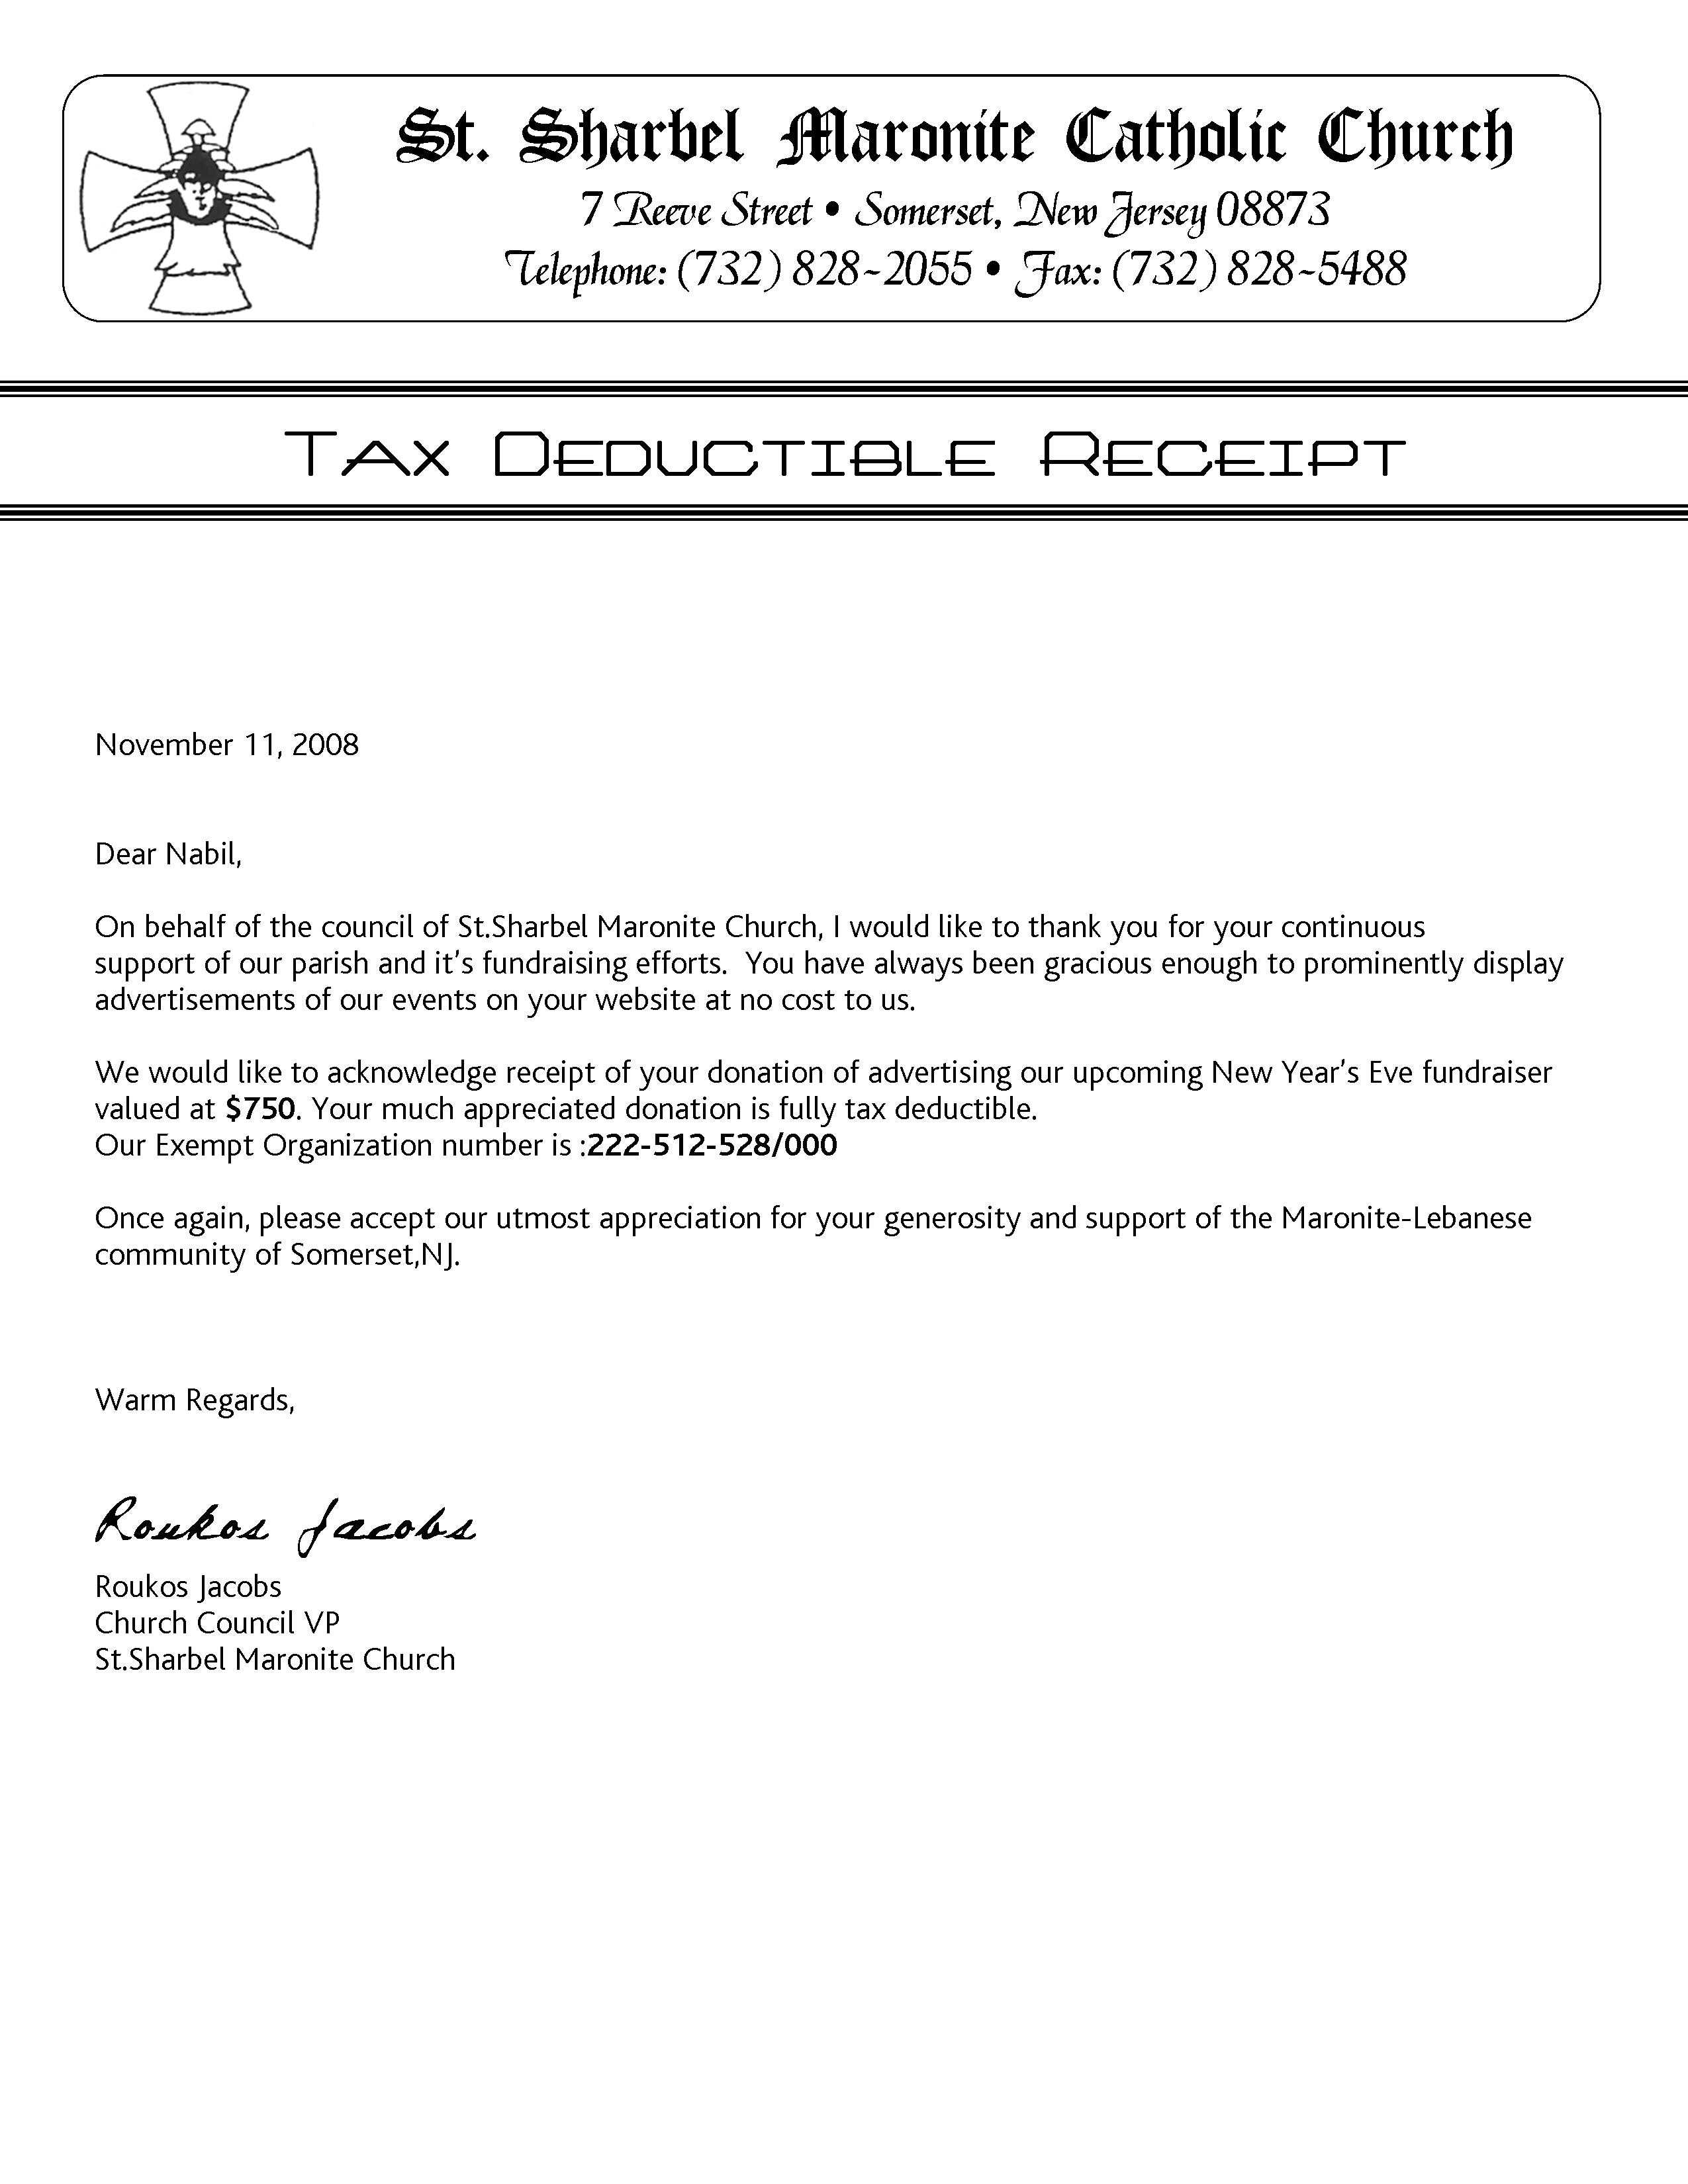 Donation Letter Template for Church - Church Donation form Template as Well as Index Cdn 12 2006 721